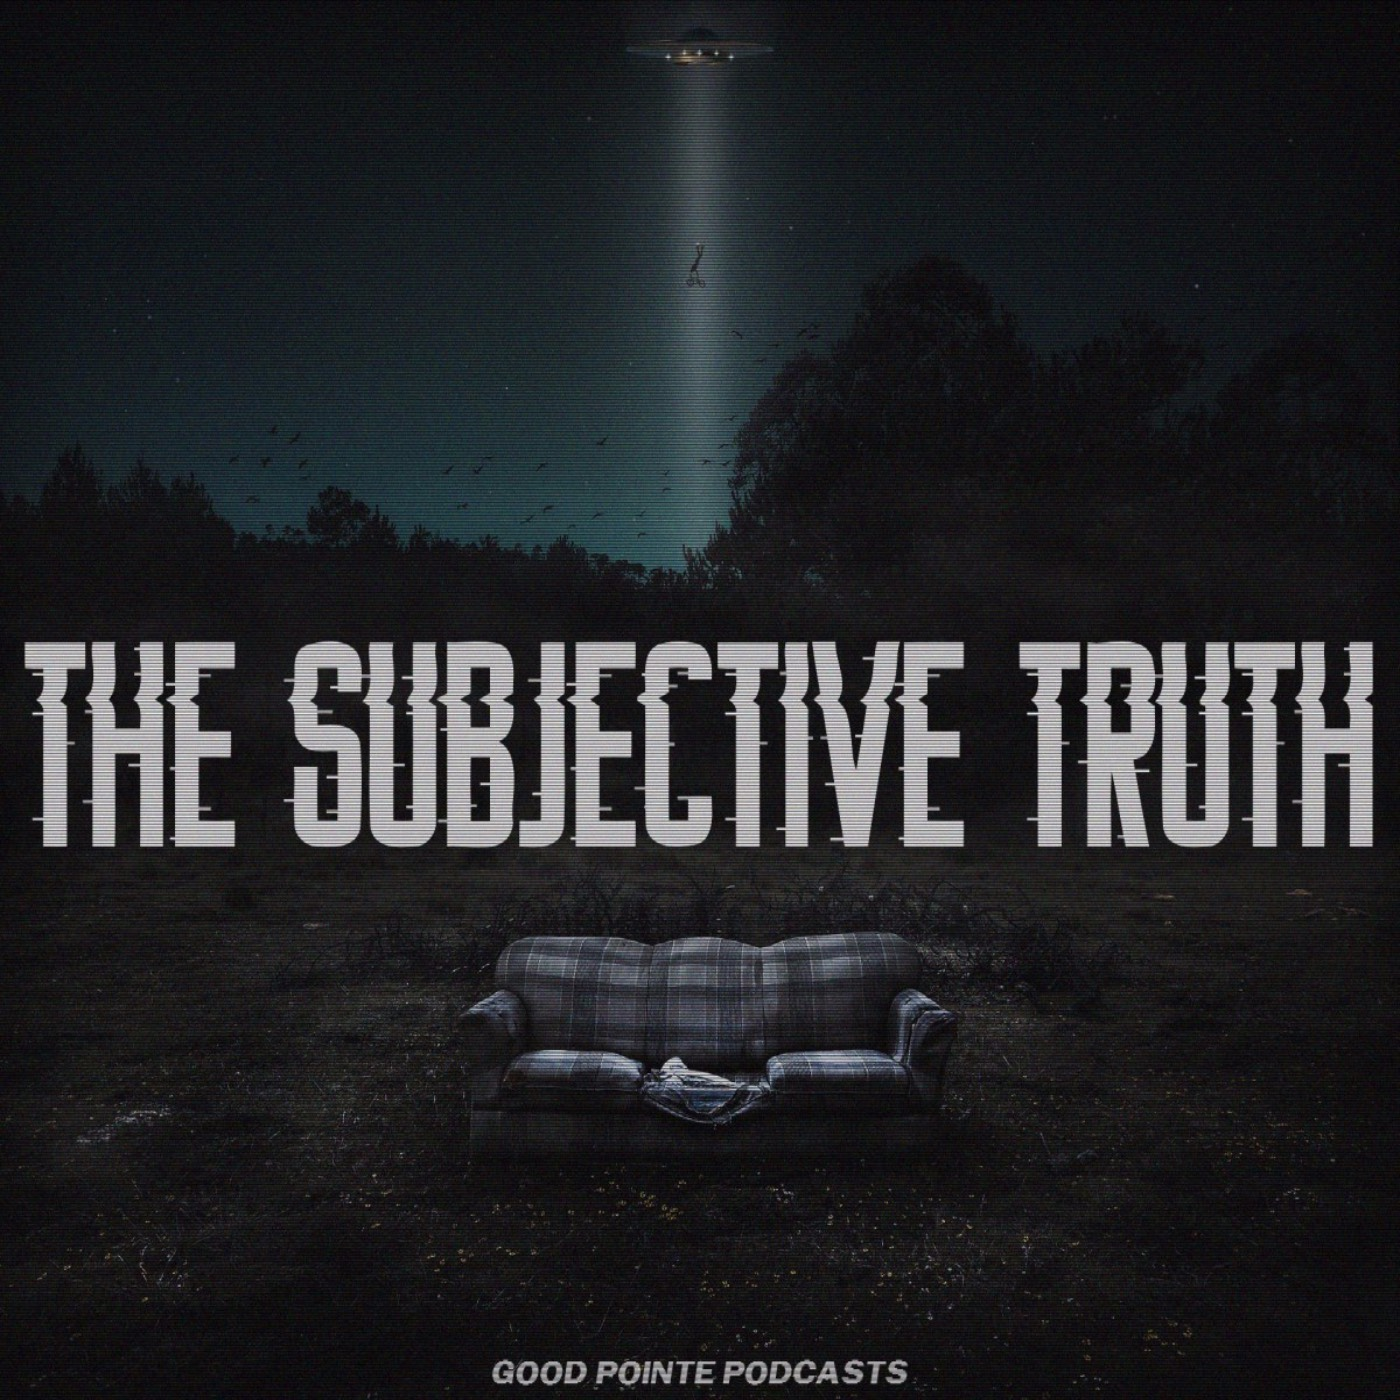 The Subjective Truth Podcast